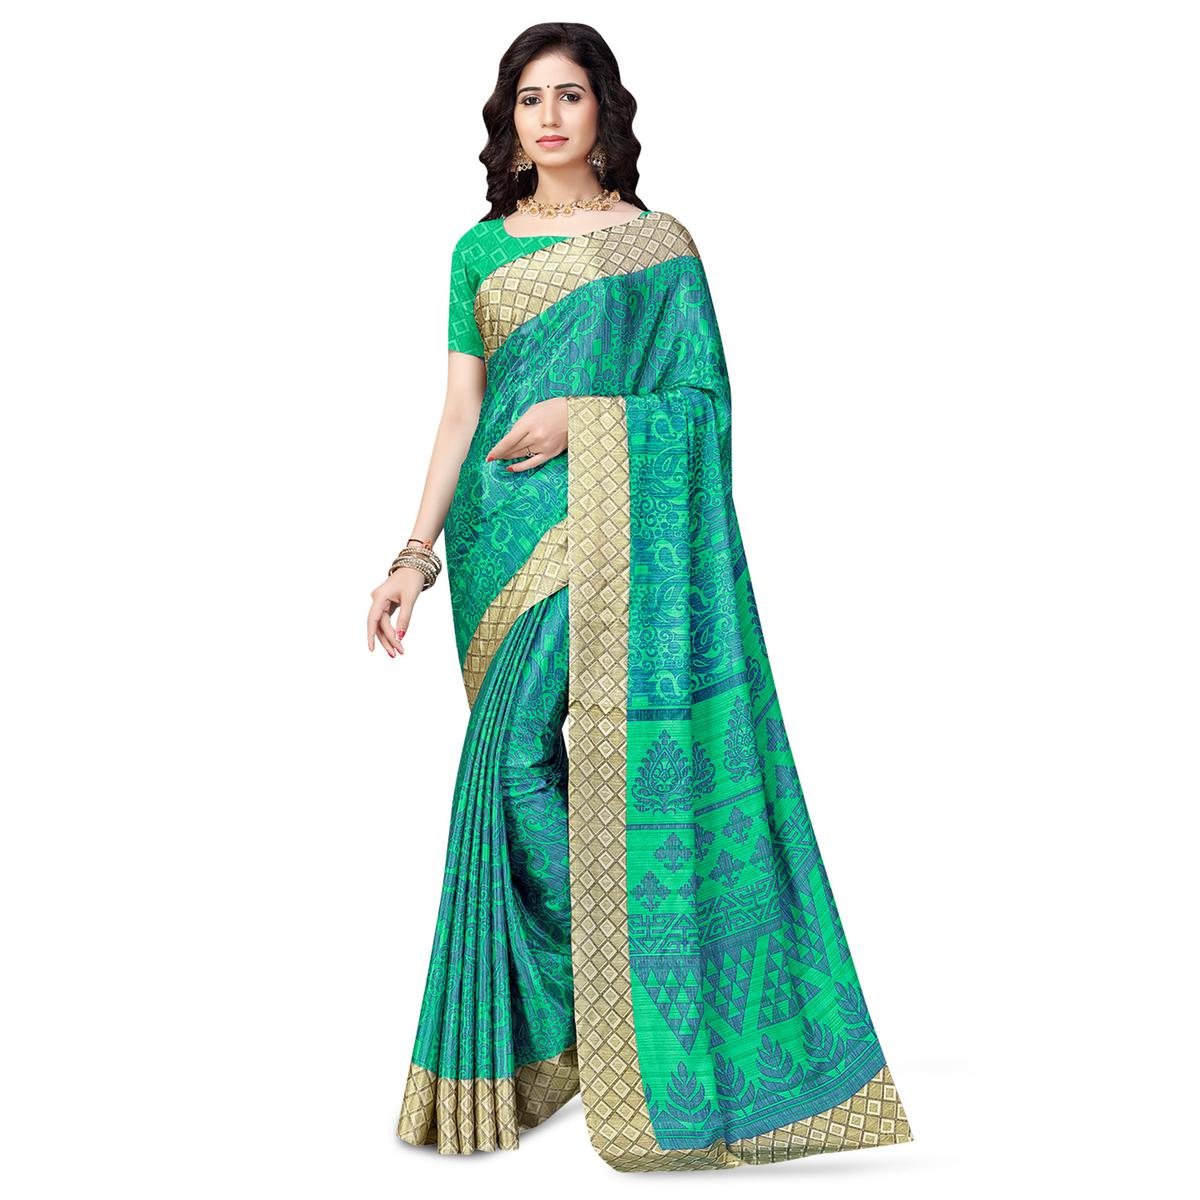 Blissful Turquoise Green Colored Casual Printed Crepe Saree